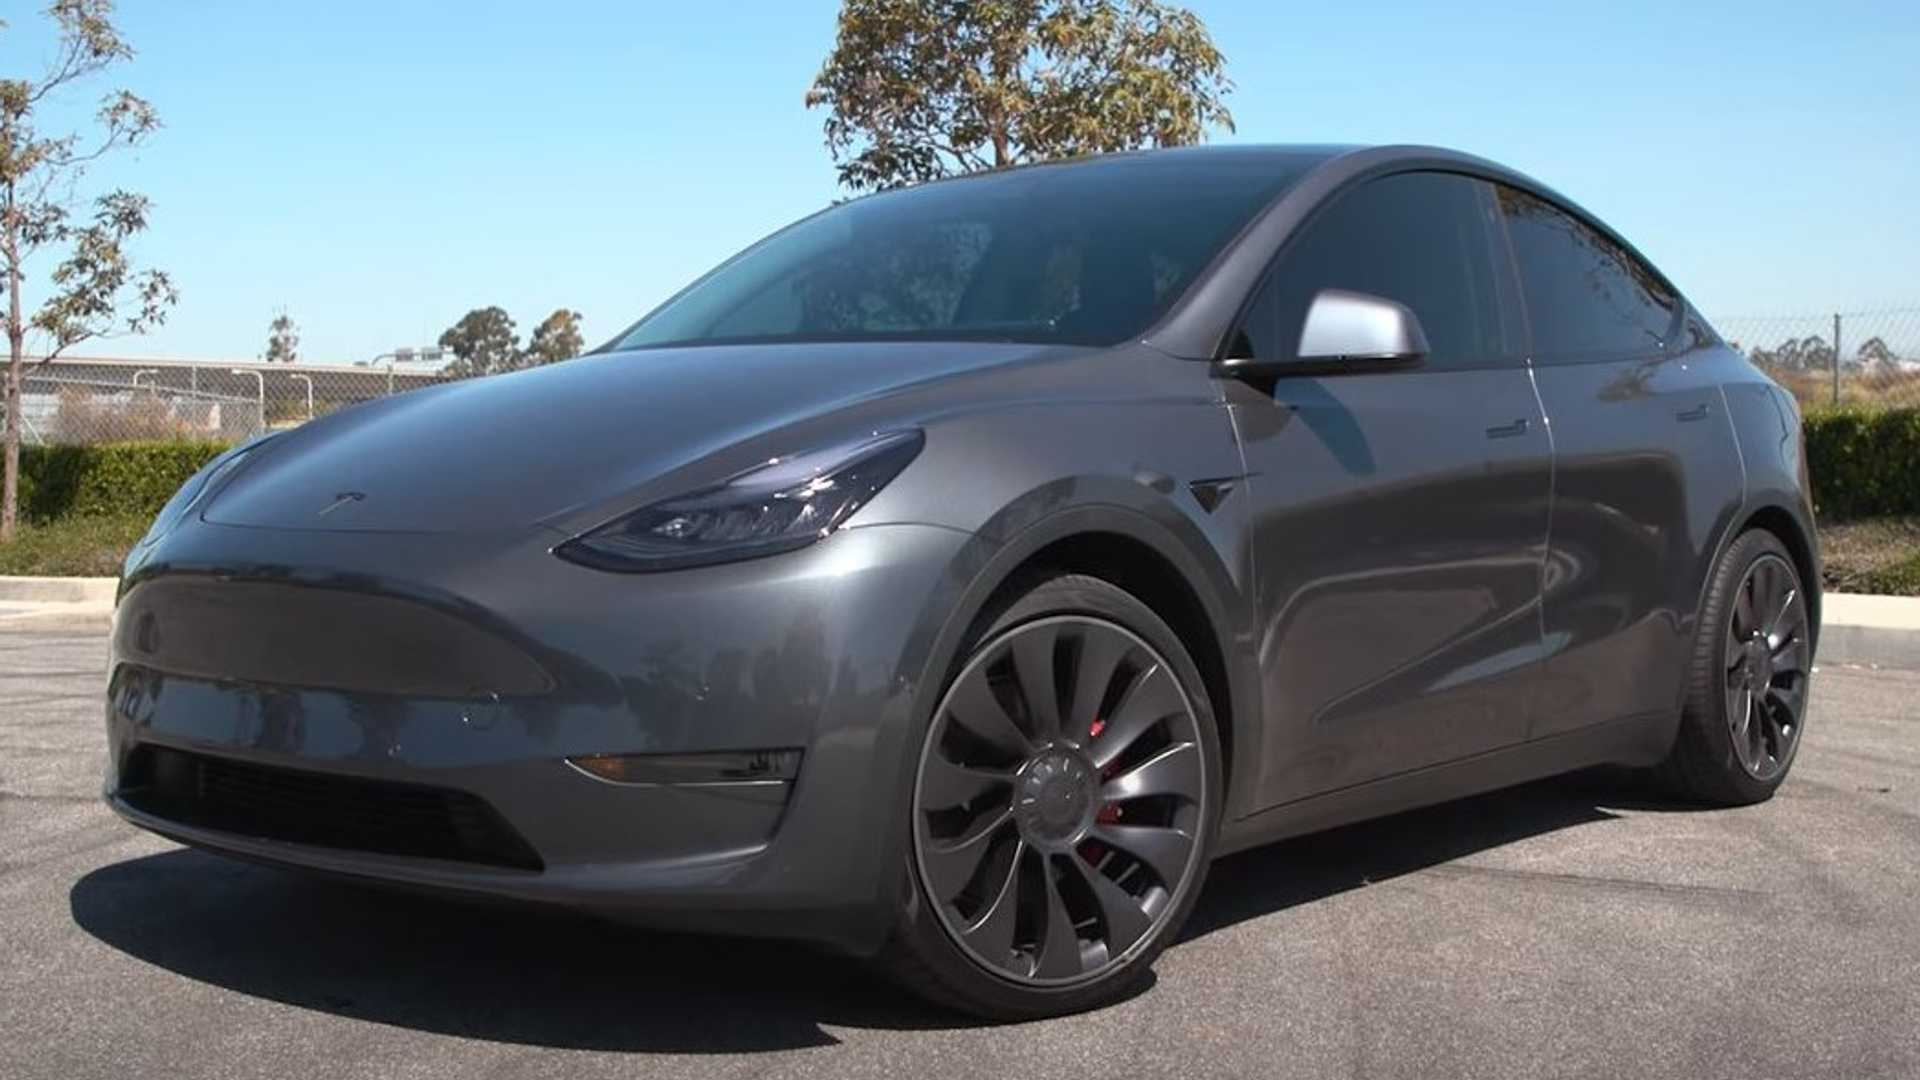 HD 2021 Tesla Model Y wallpapers and photos and images collection 1920x1080